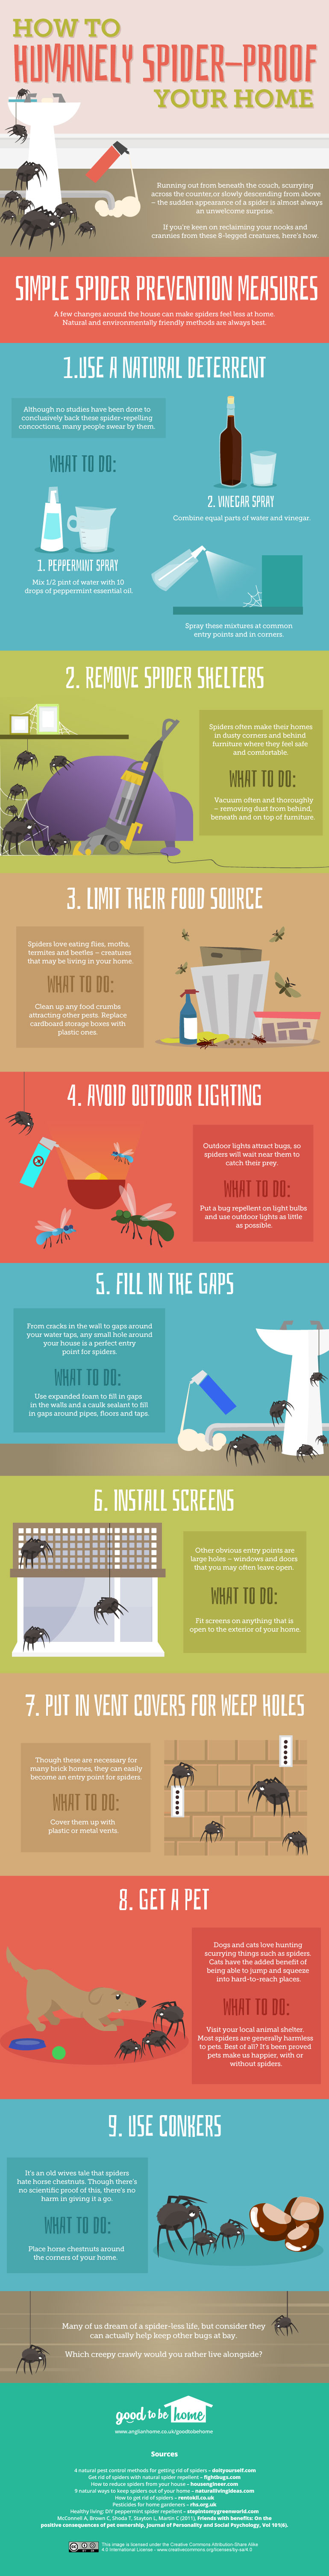 How to Get Rid of Spiders from Your Home Infograpic